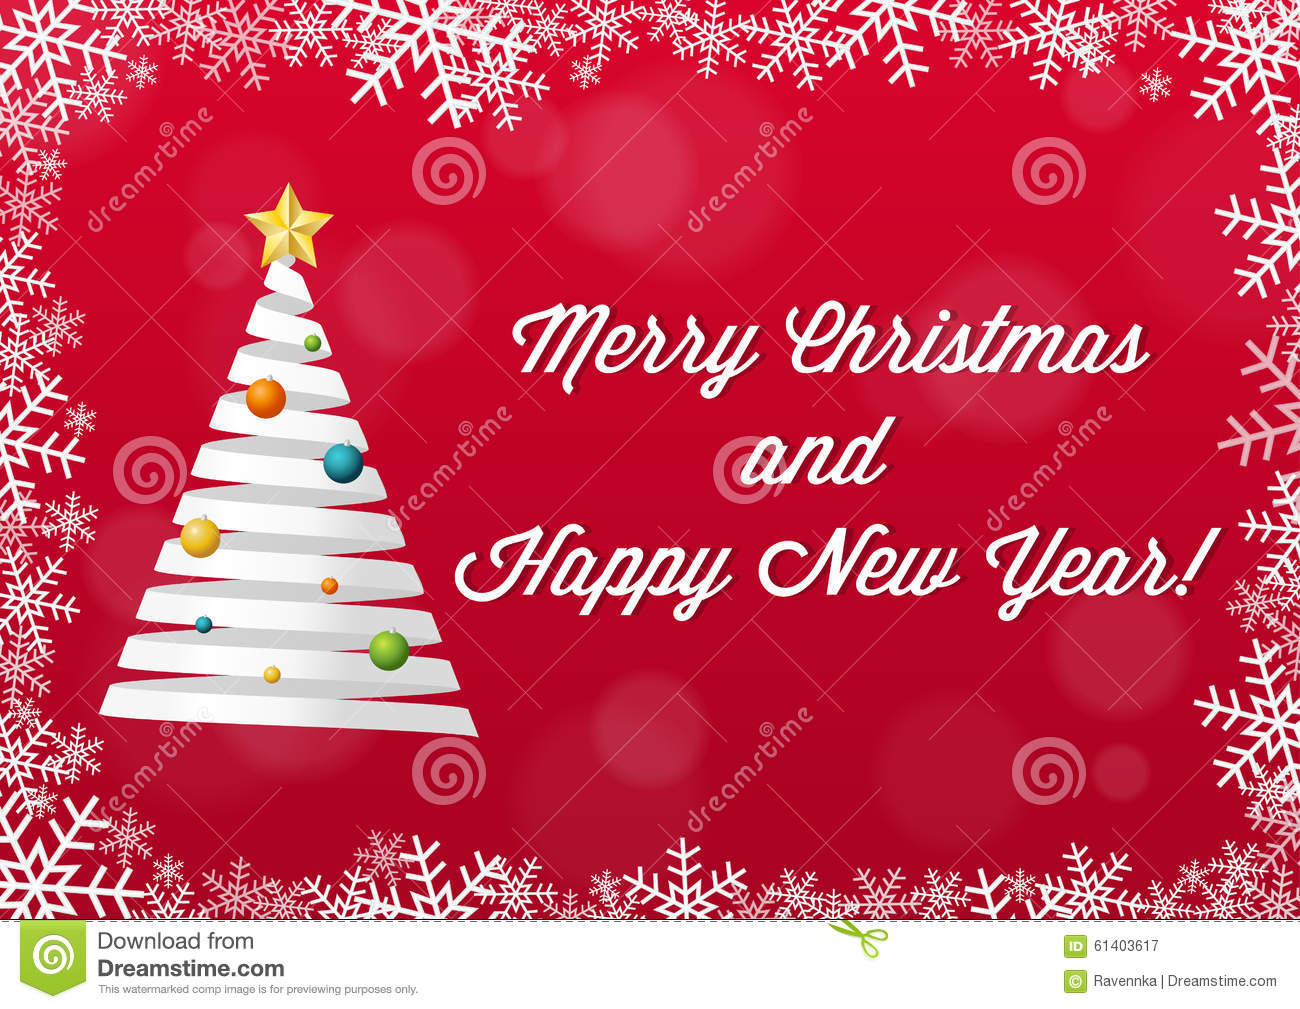 Merry Christmas And Happy New Year Card - White On Red Backgroun ...